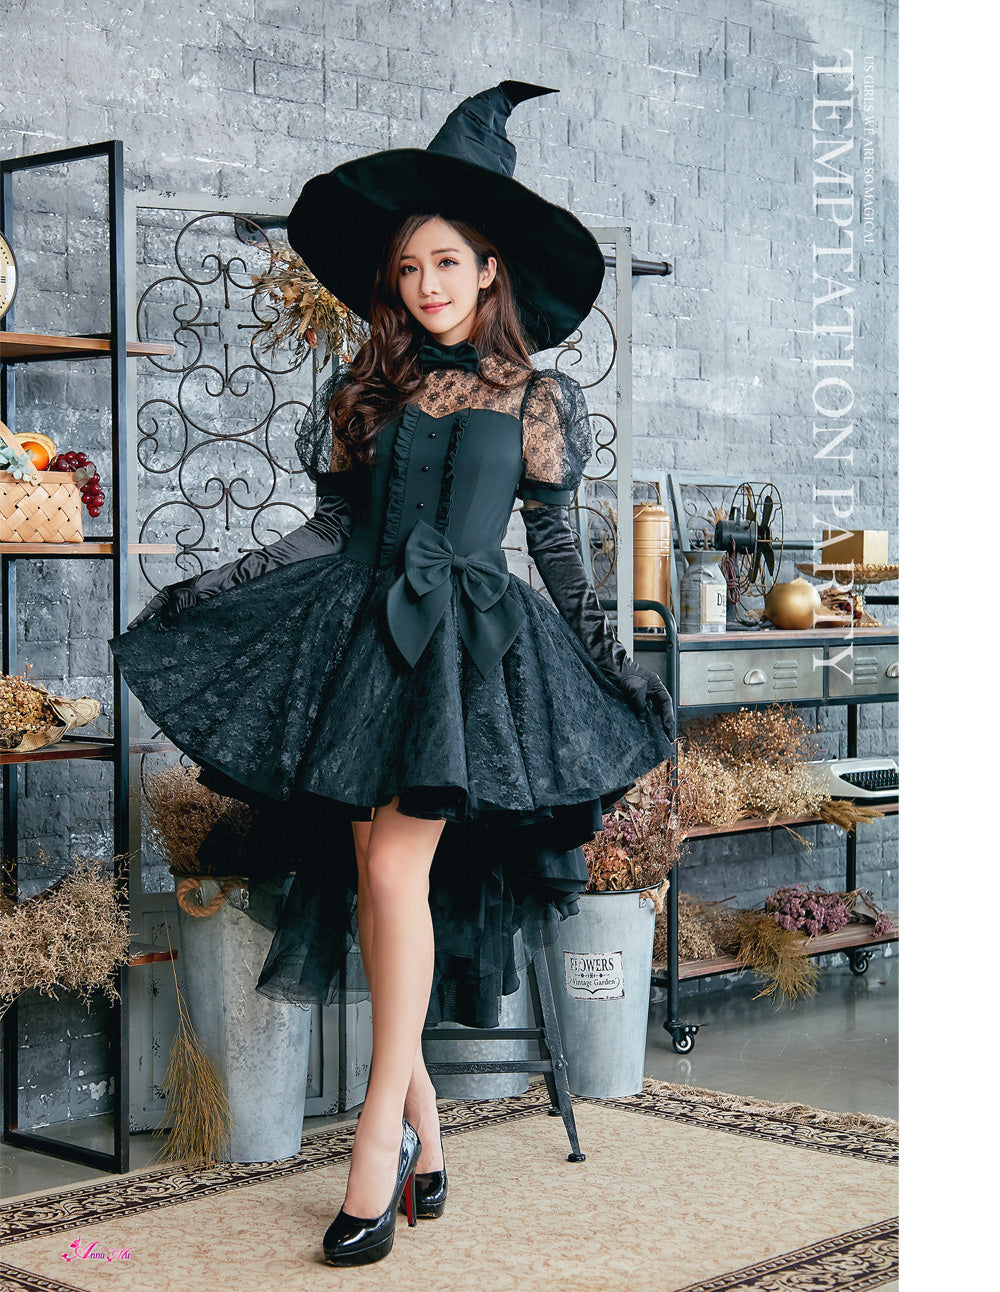 Lingeriecats Sexy Black Bewitching Women Halloween with Hat and Glove Costume - LingerieCats